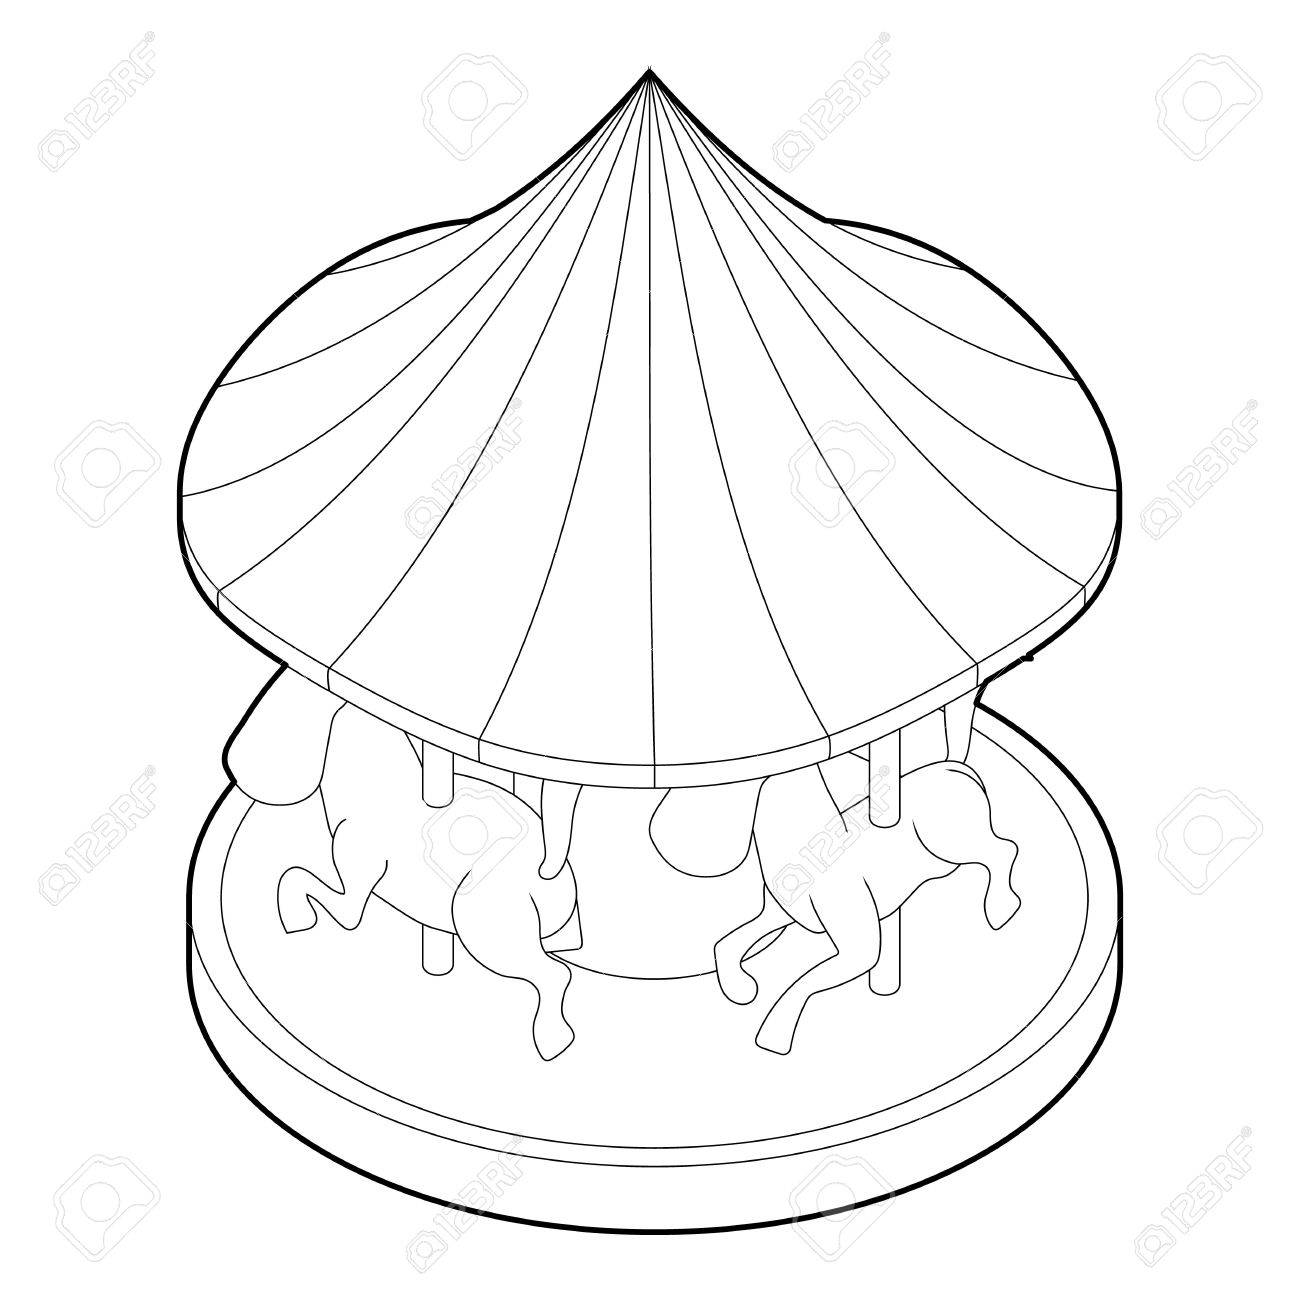 Carousel With Horses Icon Outline Illustration Of Carousel With Royalty Free Cliparts Vectors And Stock Illustration Image 63690135